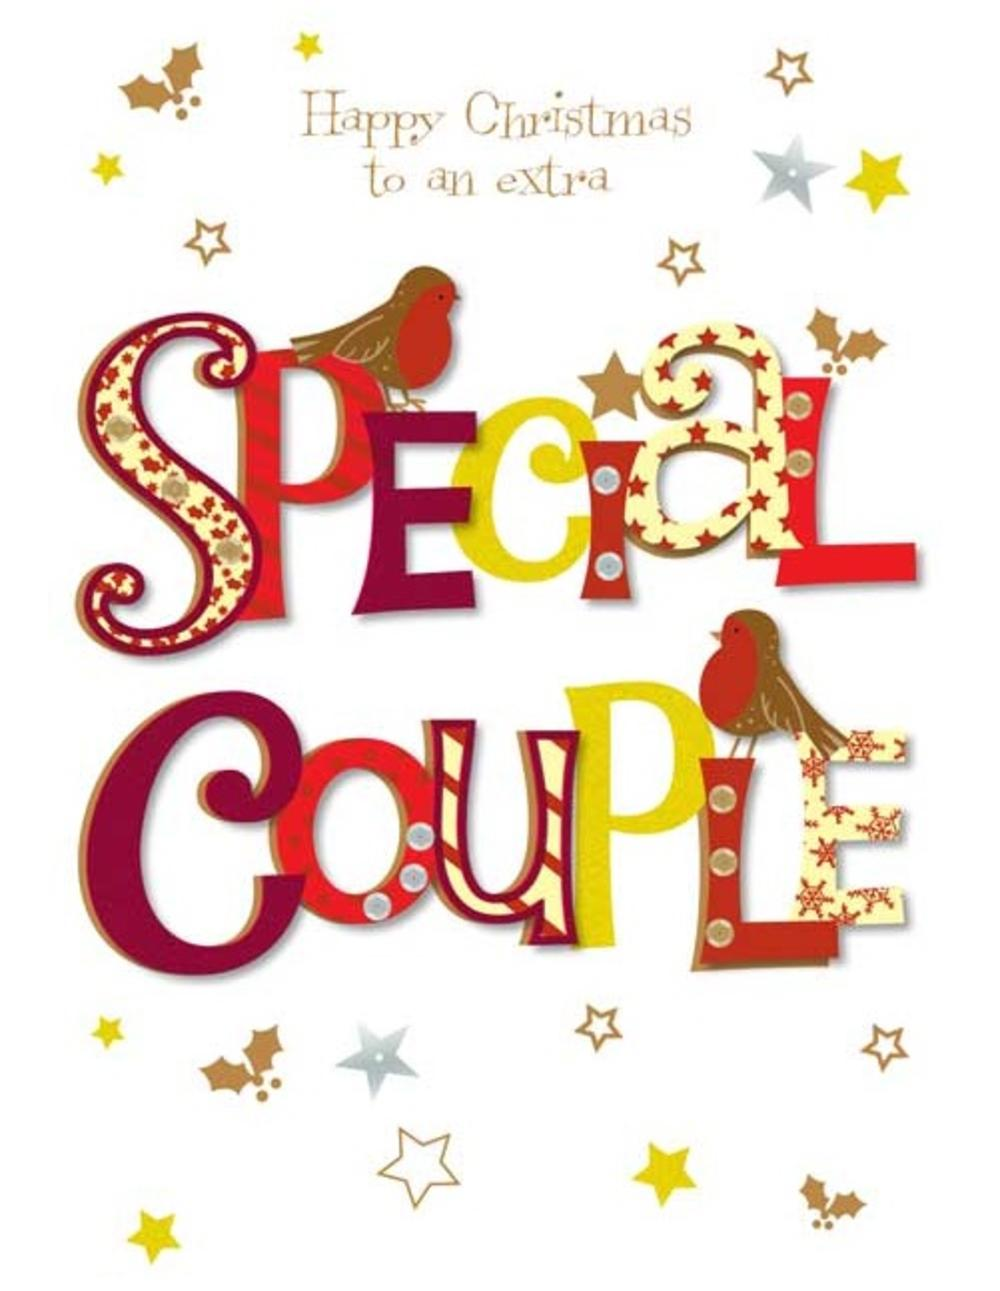 Extra Special Couple Christmas Greeting Card